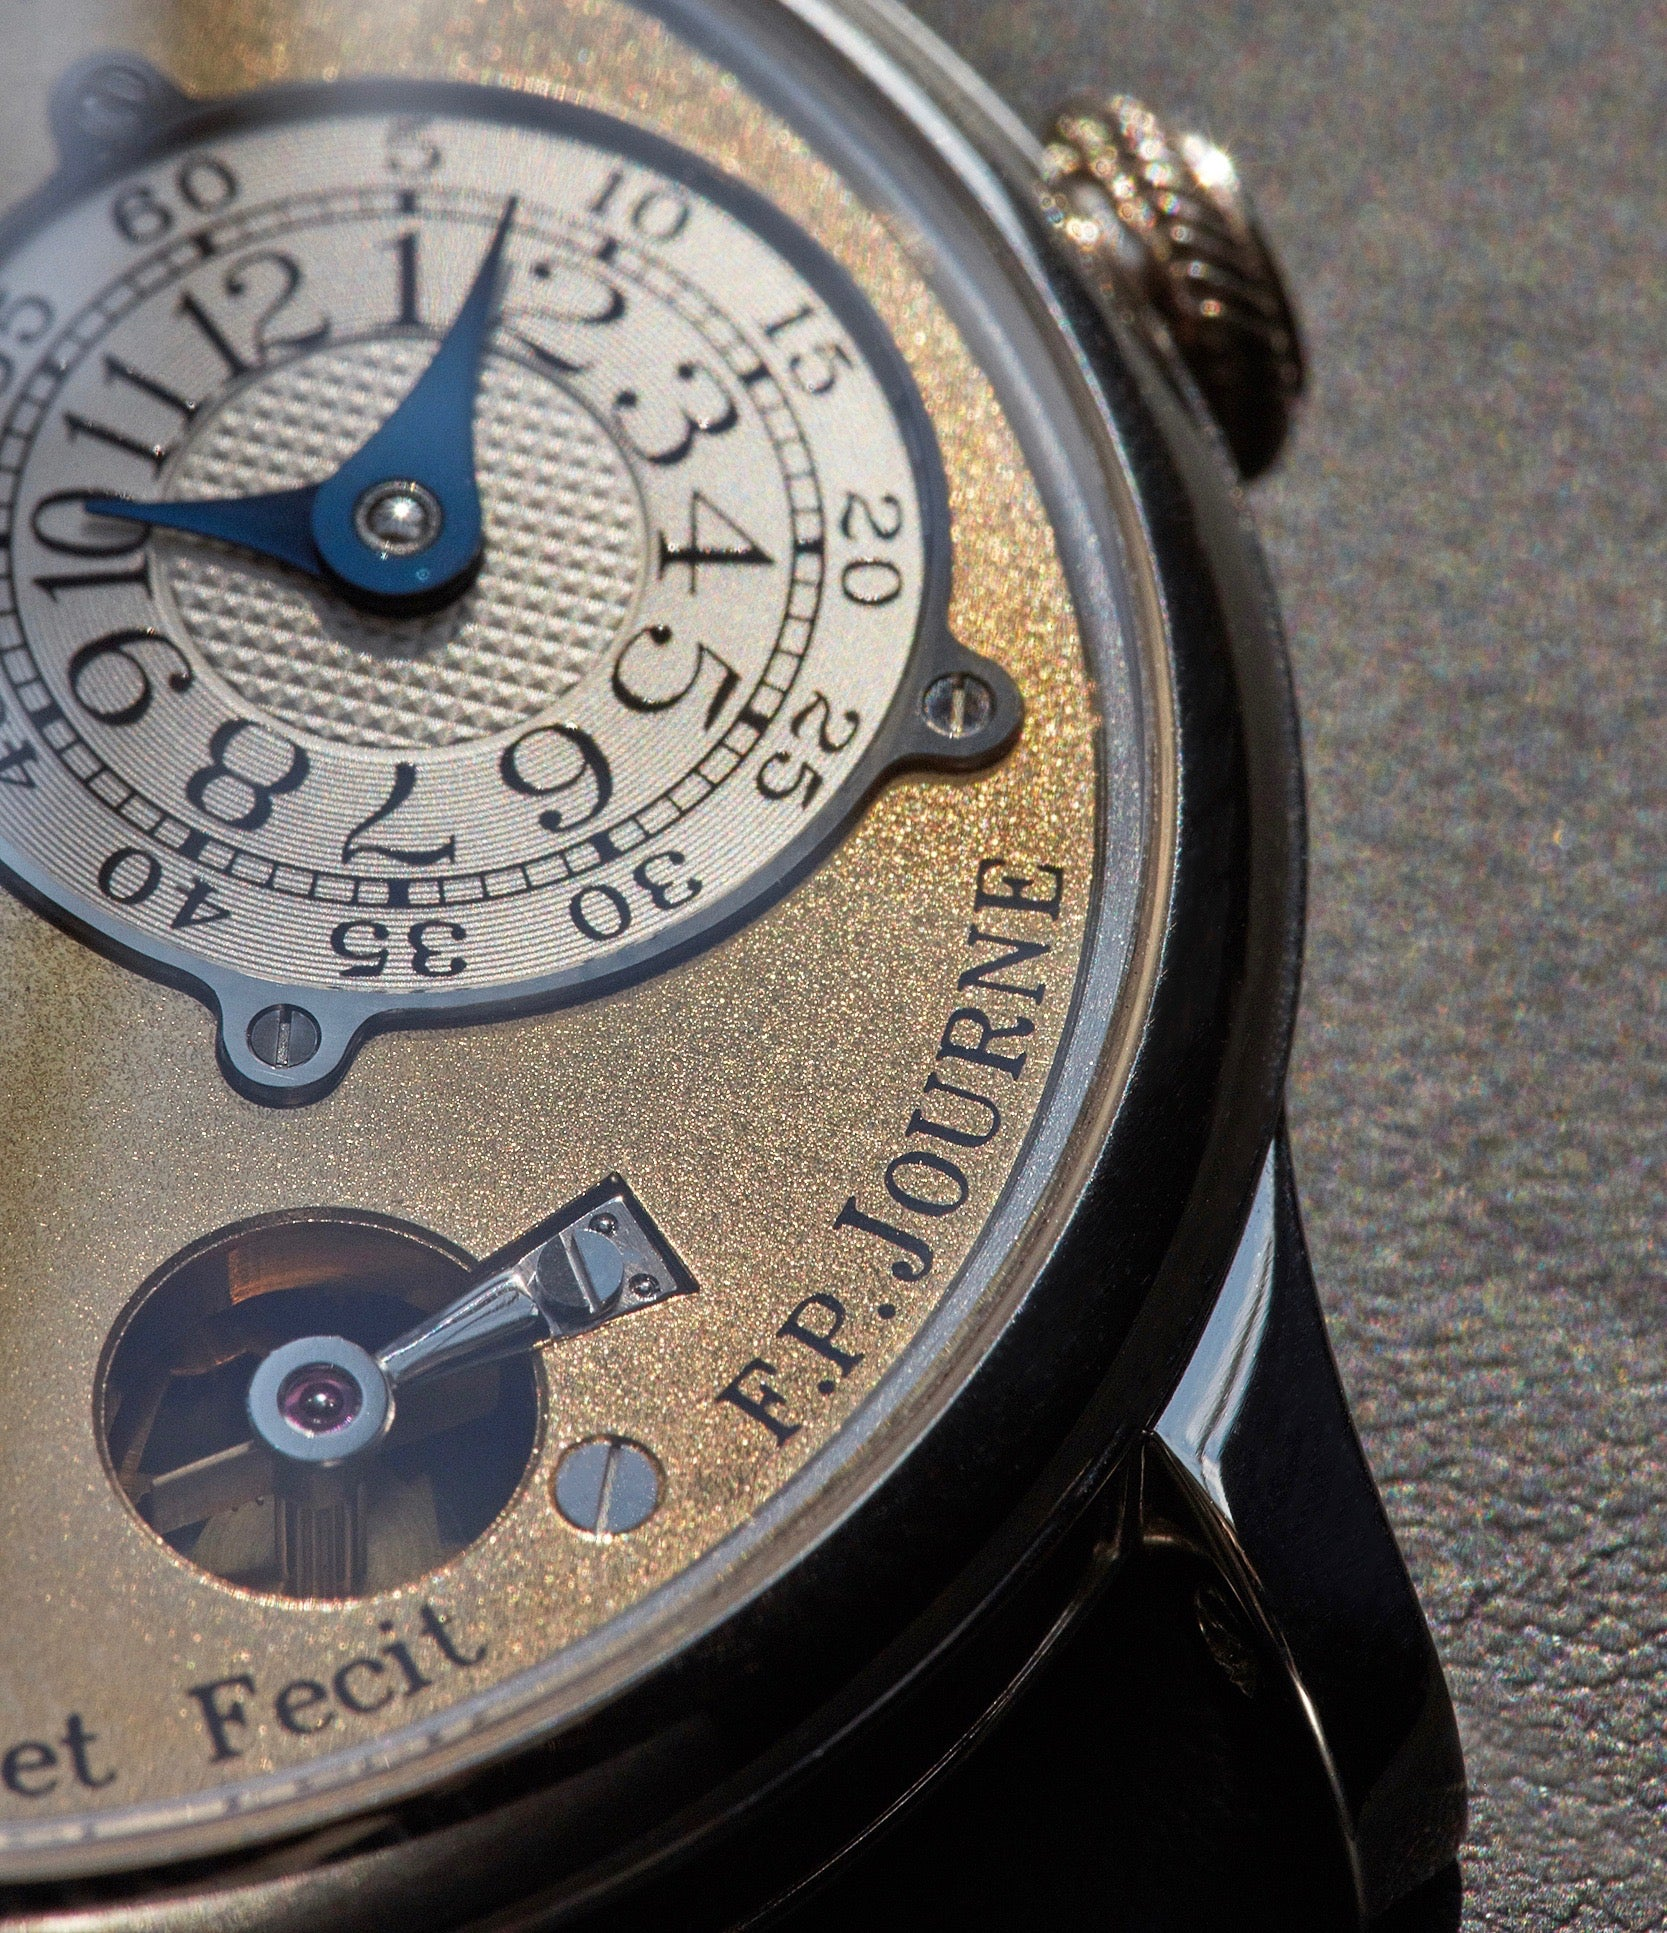 F.P. Journe Souscription Tourbillon close up on the rounded remontoire cock